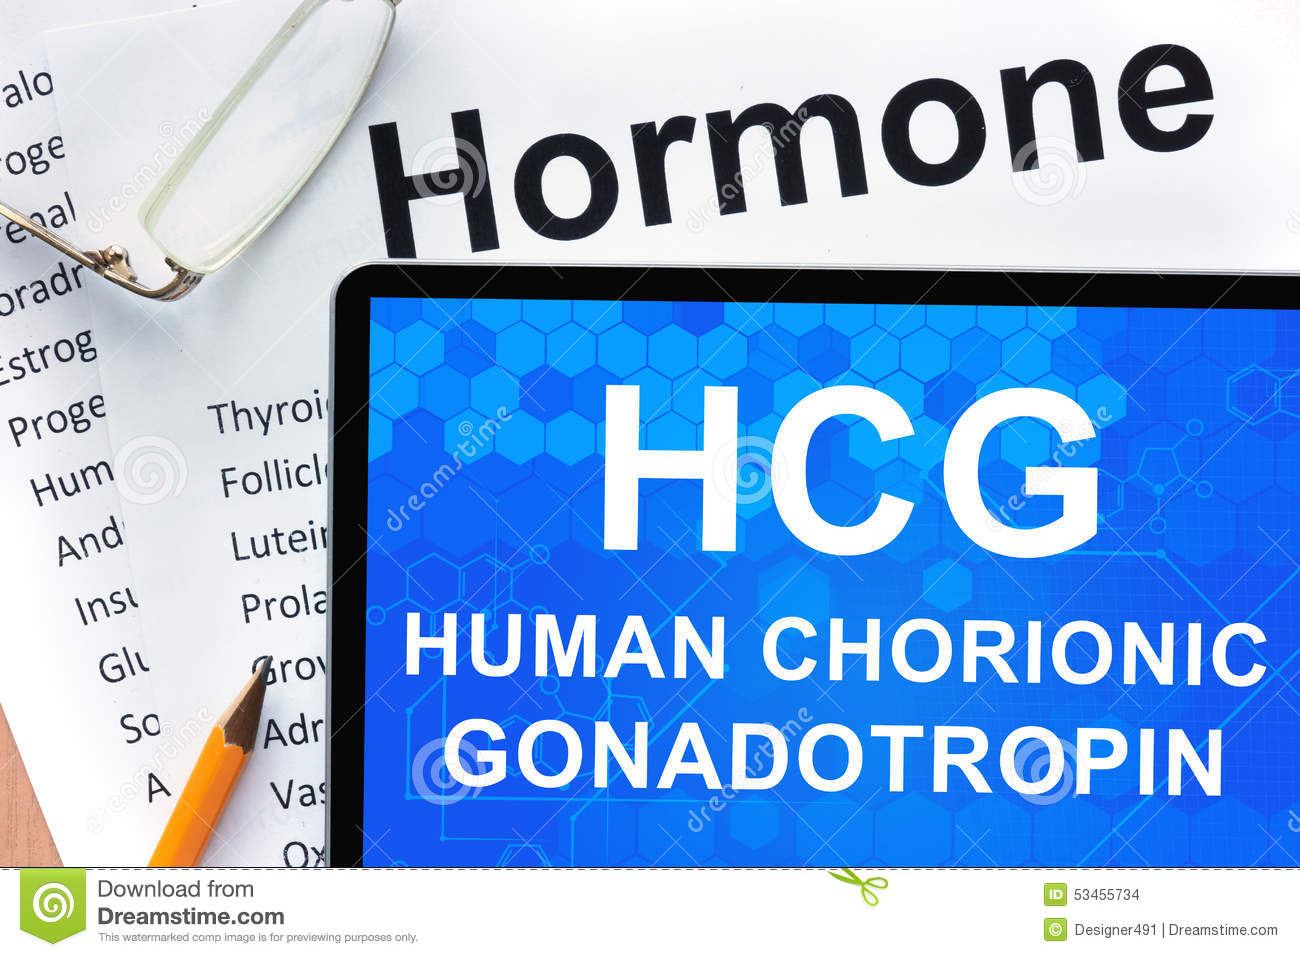 human chorionic gonadotropin essay Photo showing a urine sample that has tested positive for human chorionic gonadotropin (hcg) this hormone is secreted by the placenta in pregnant women human chorionic gonadotrophin is a hormone produced by the cells that surround the growing human embryo  these cells will eventually go on to form the placenta.